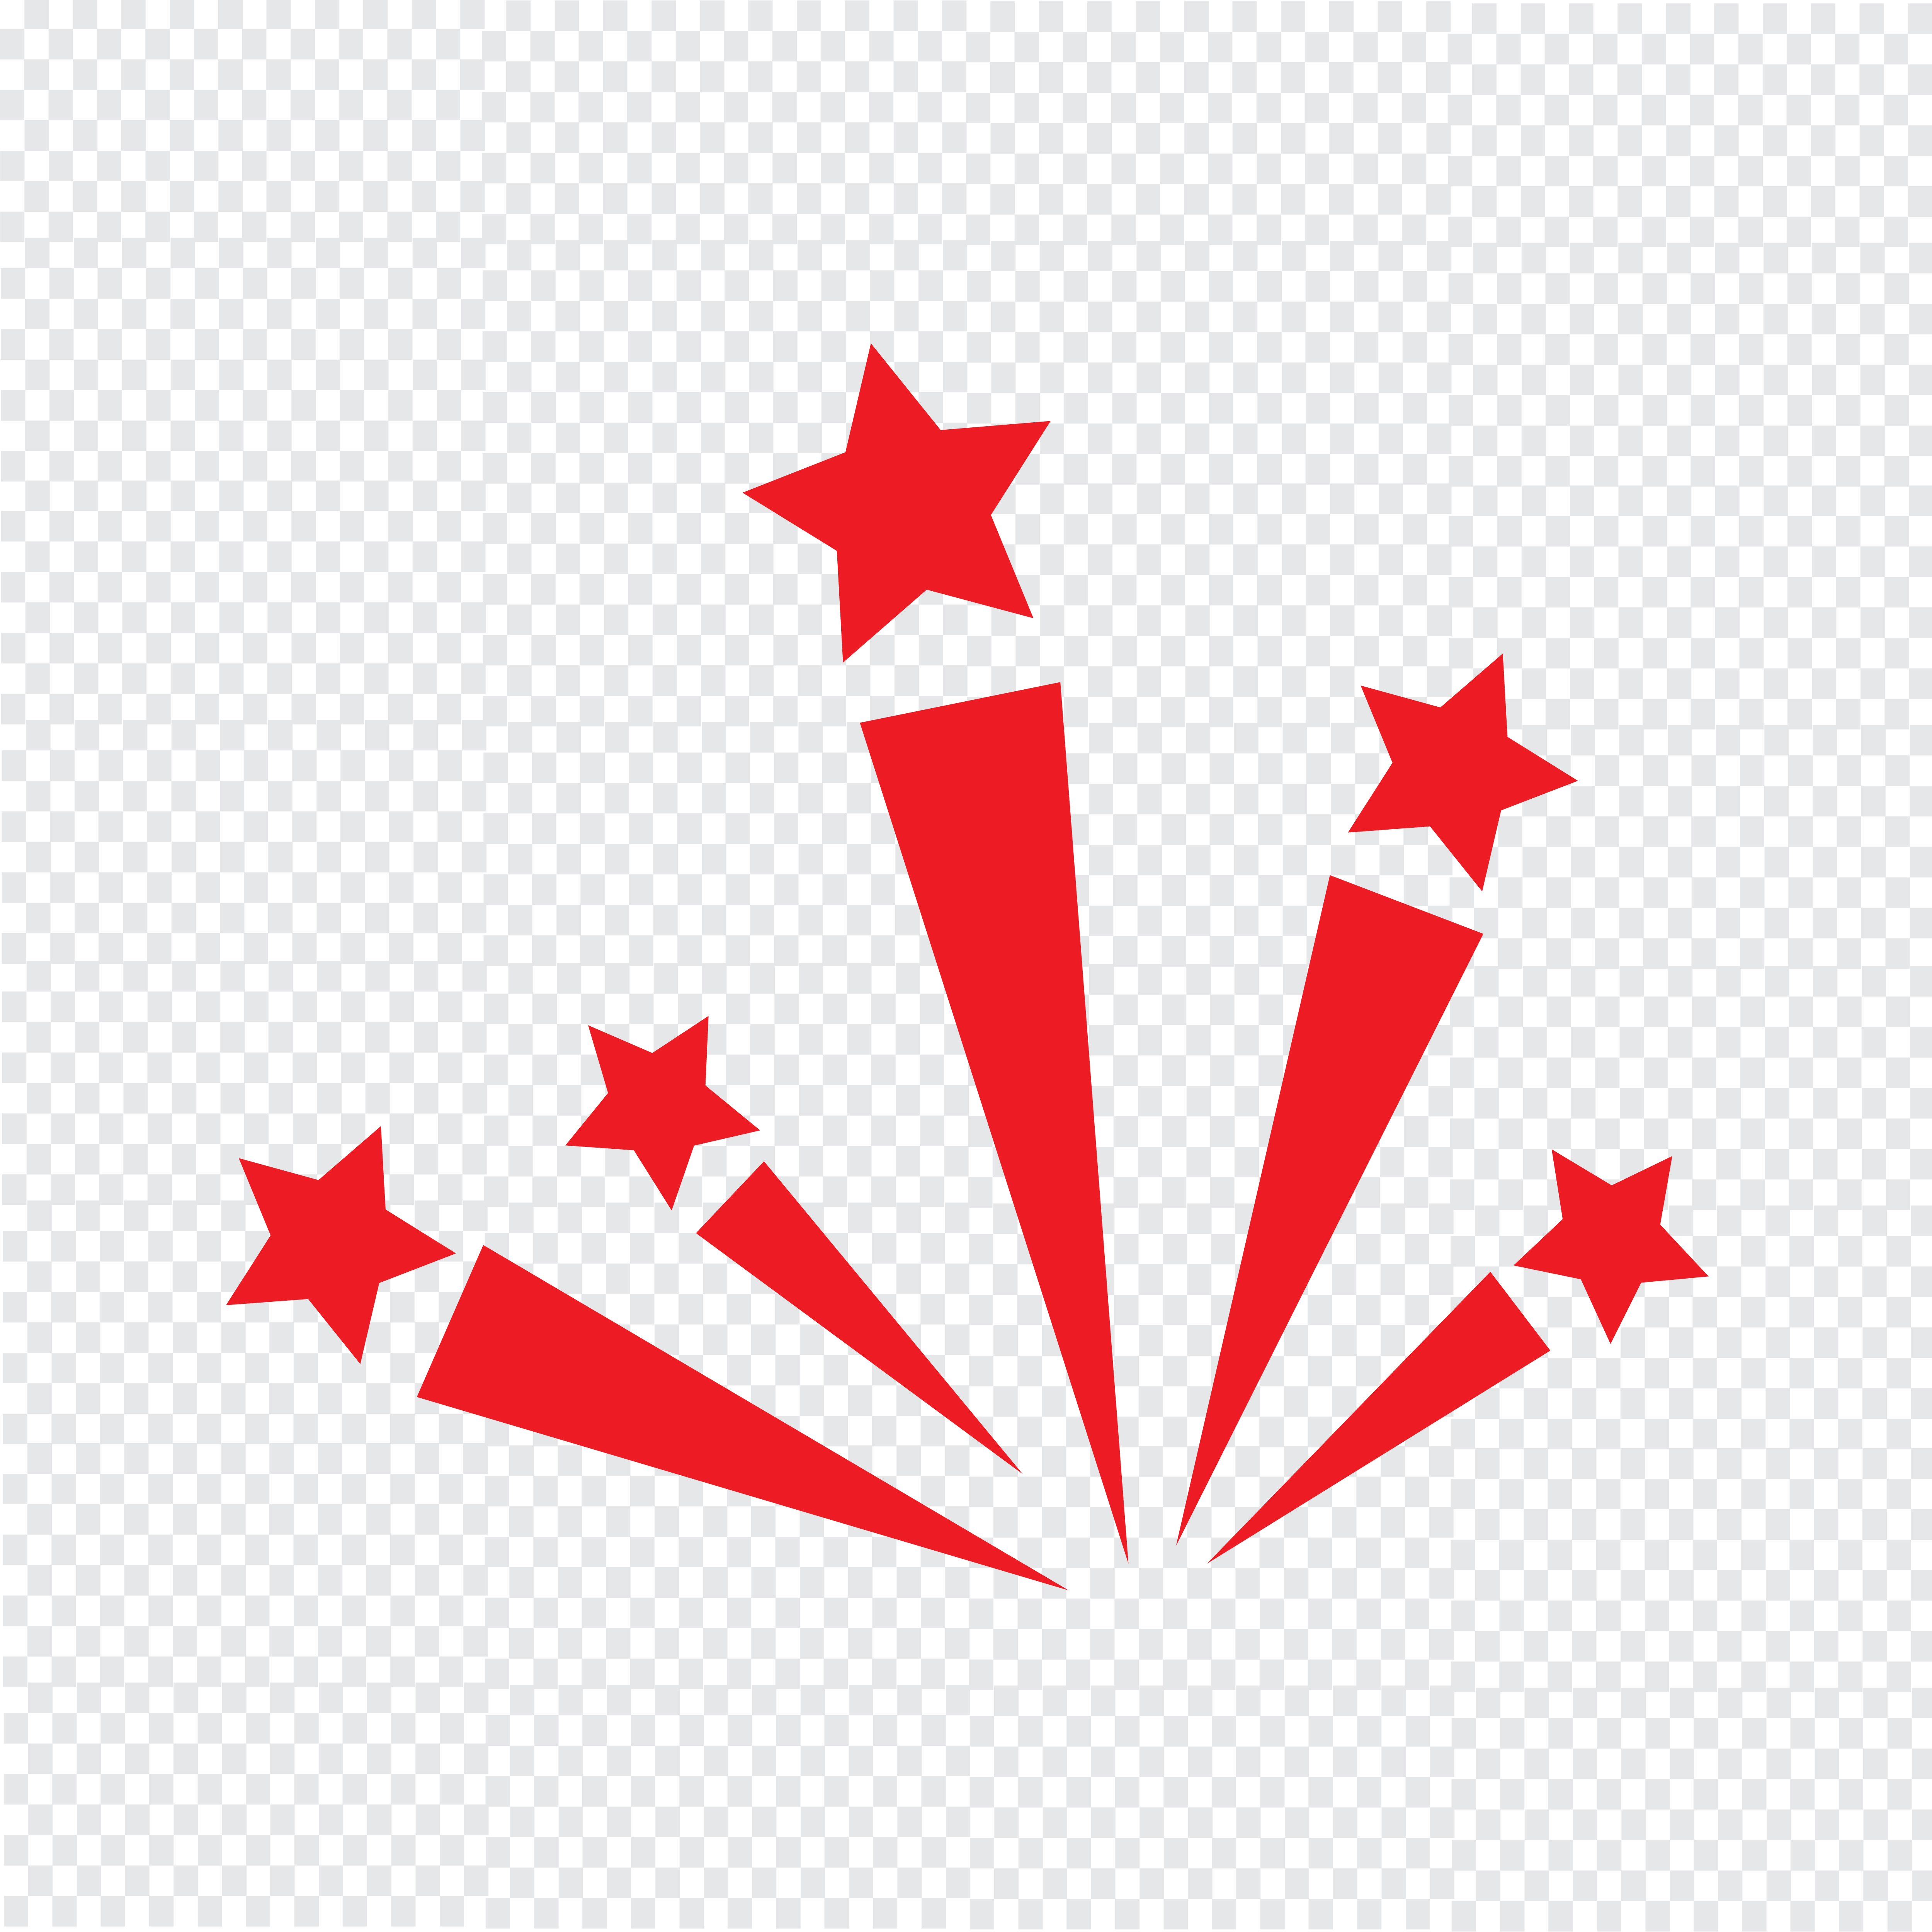 firework icon vector illustration - Download Free Vectors ... Fireworks Icons Free